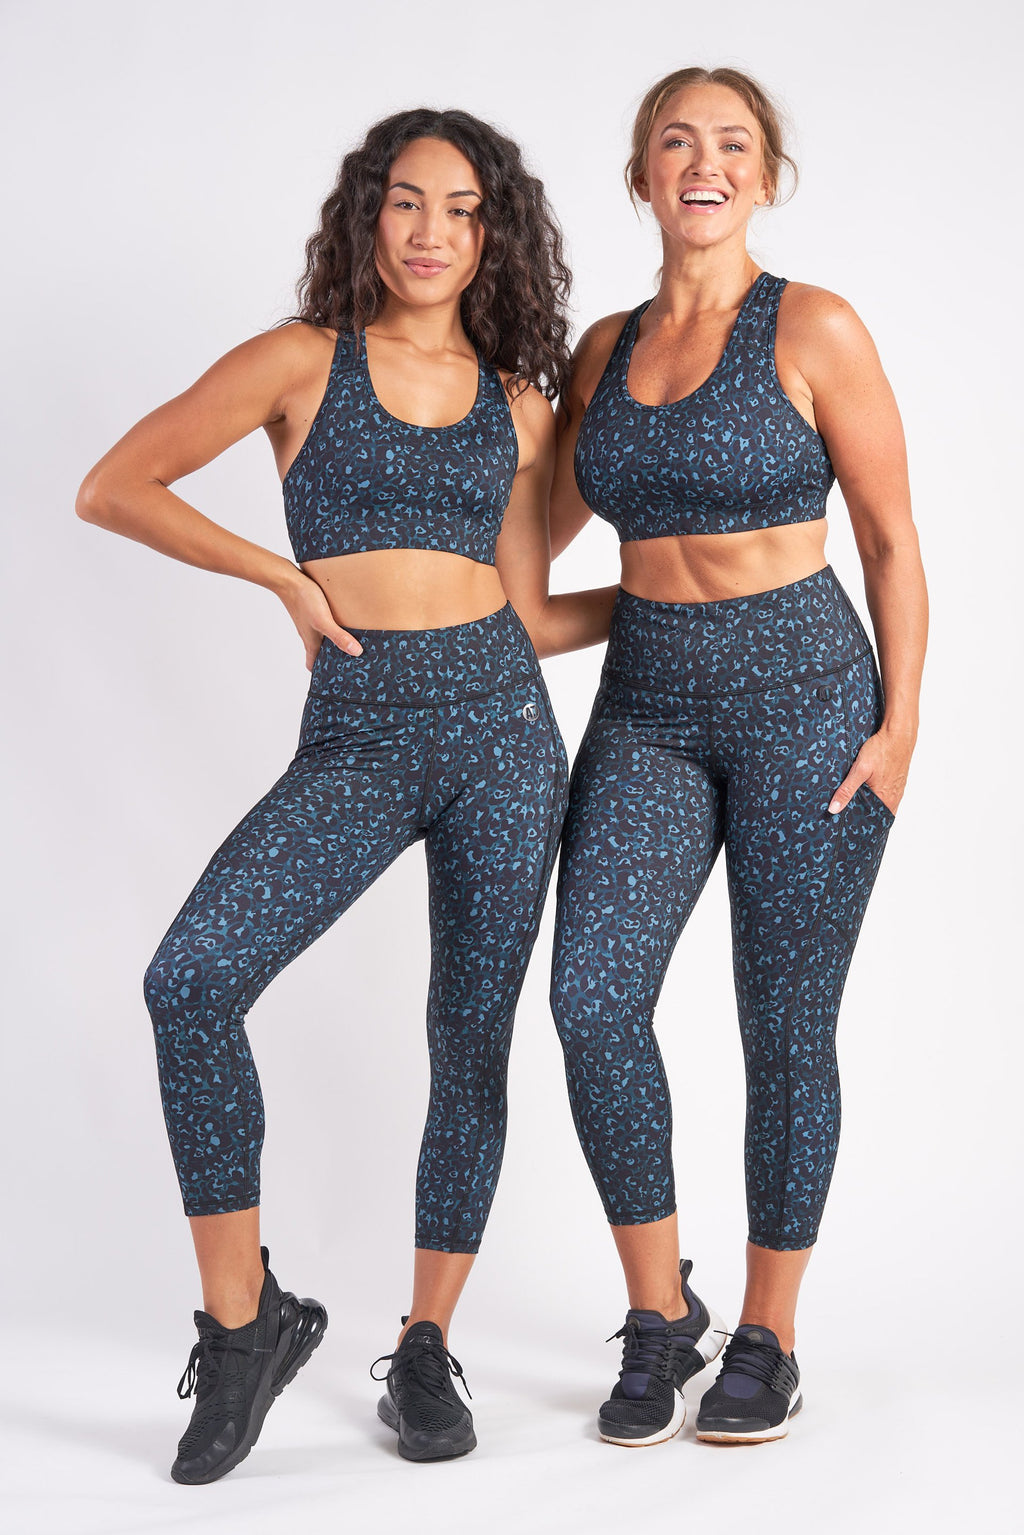 Smart Pocket 7/8 Length Tight - Emerald Leopard from Active Truth USA